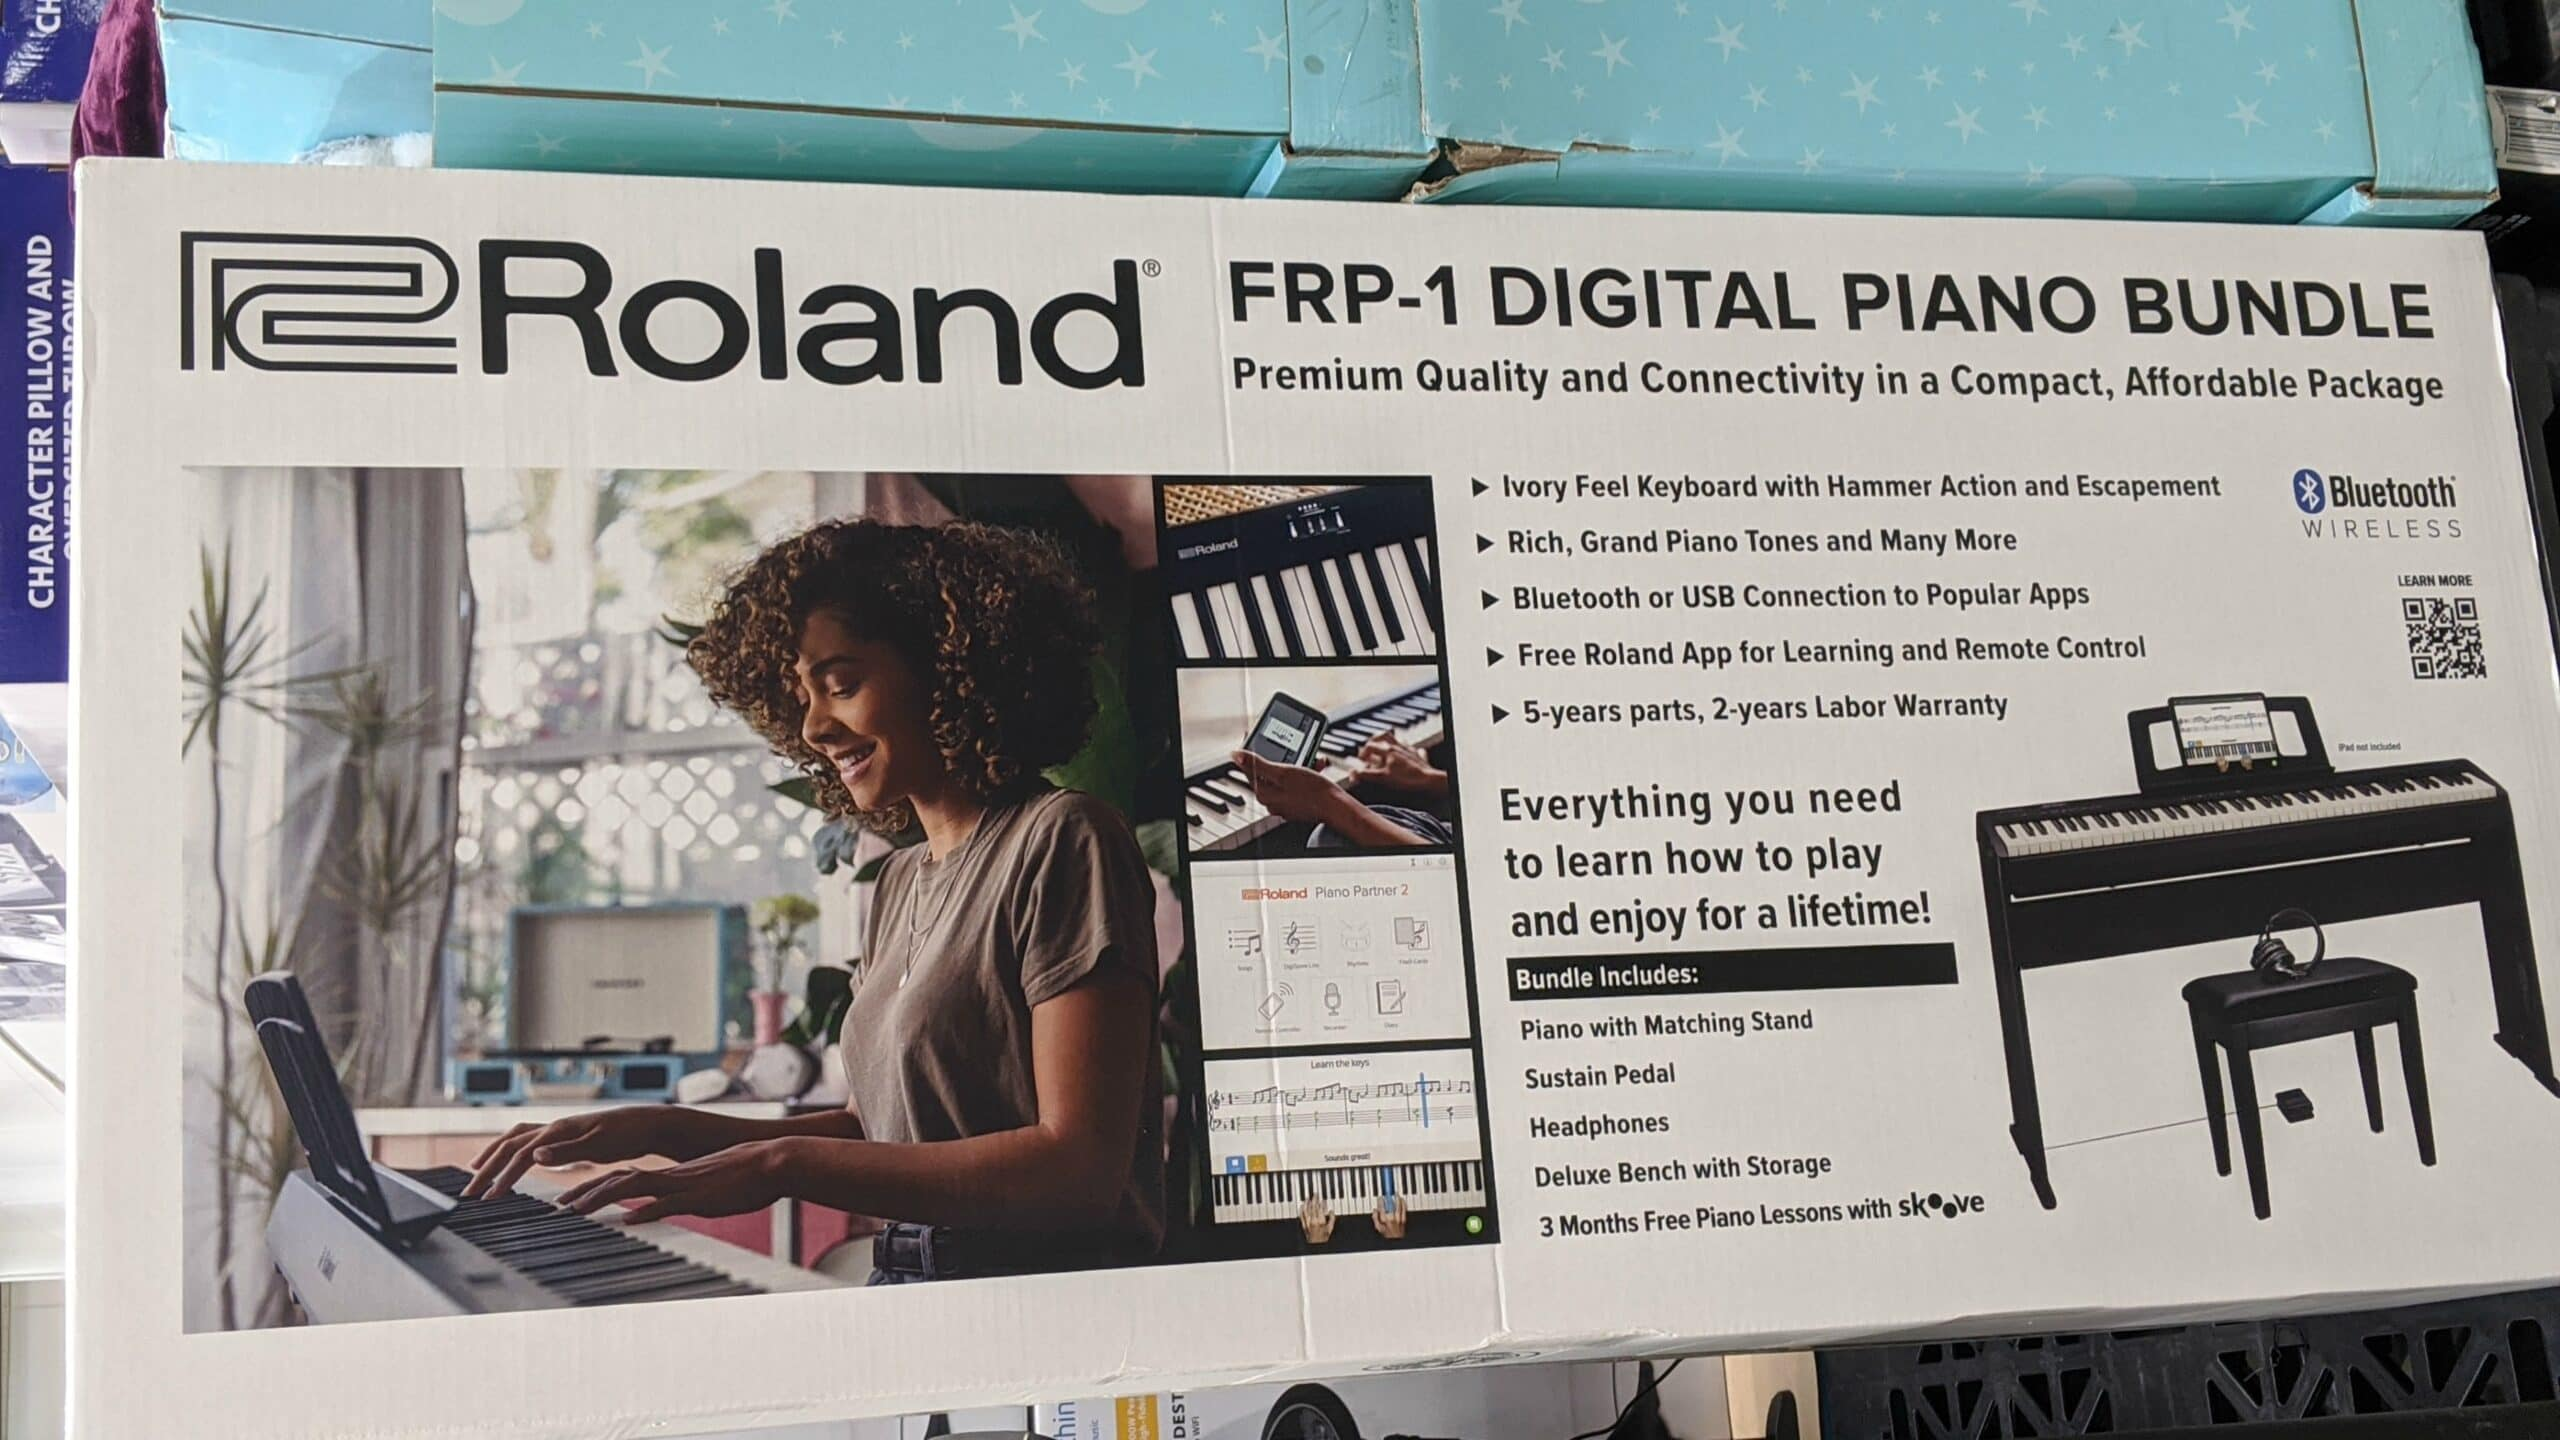 Roland Digital Piano at Costco